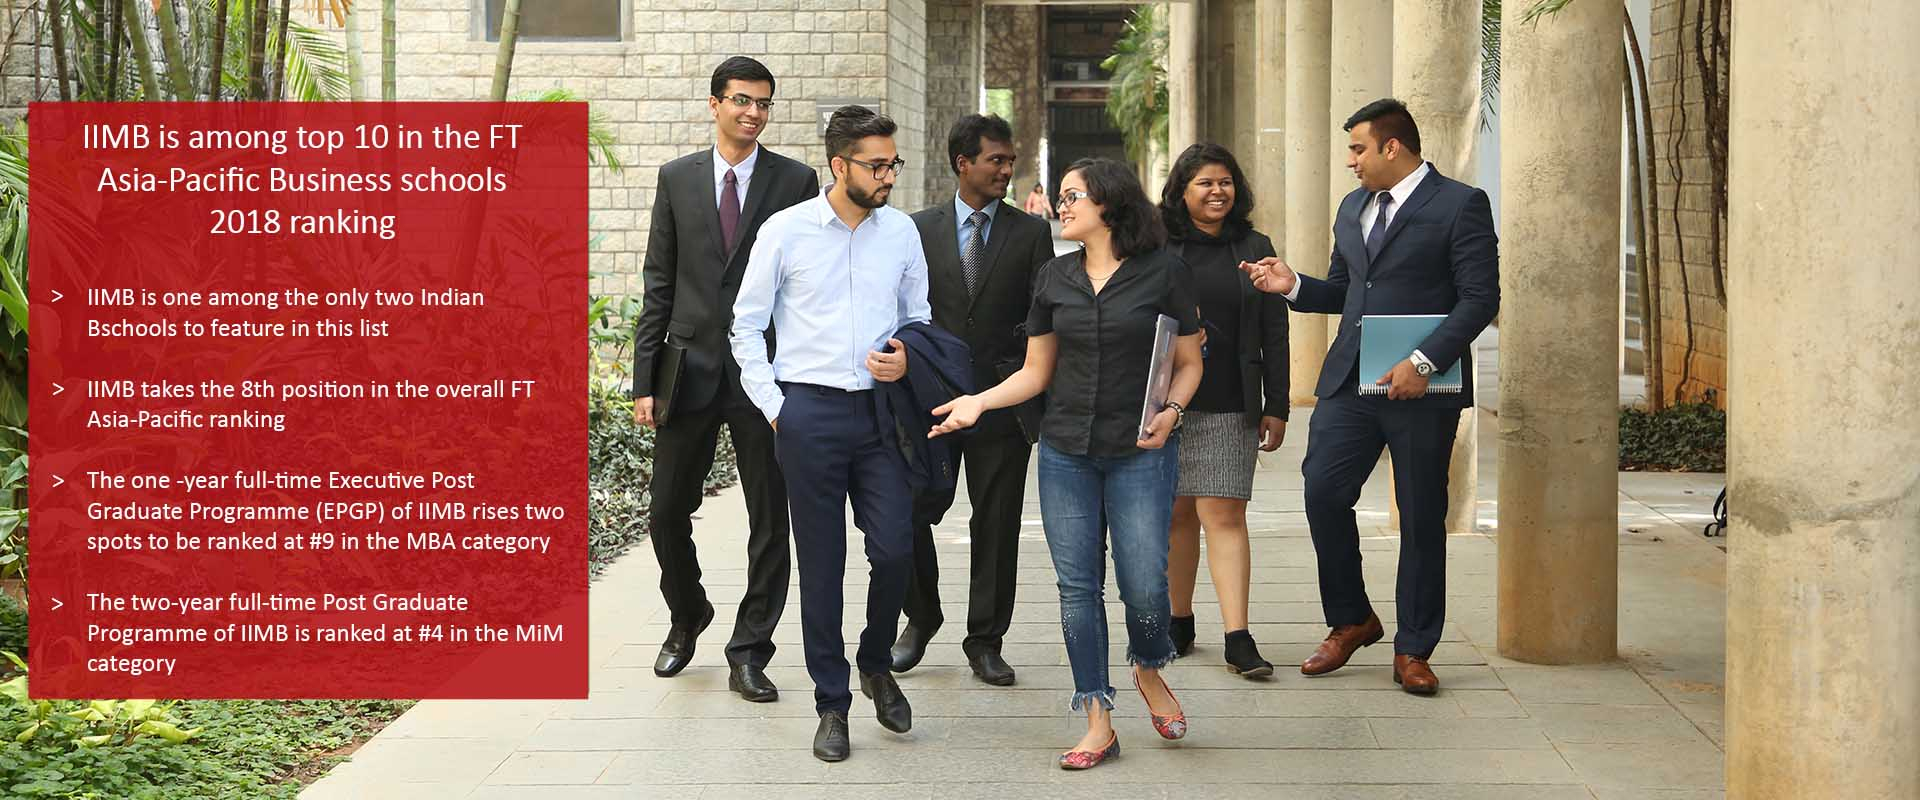 IIM Bangalore is among top 10 in the FT Asia-Pacific Business schools 2018 ranking